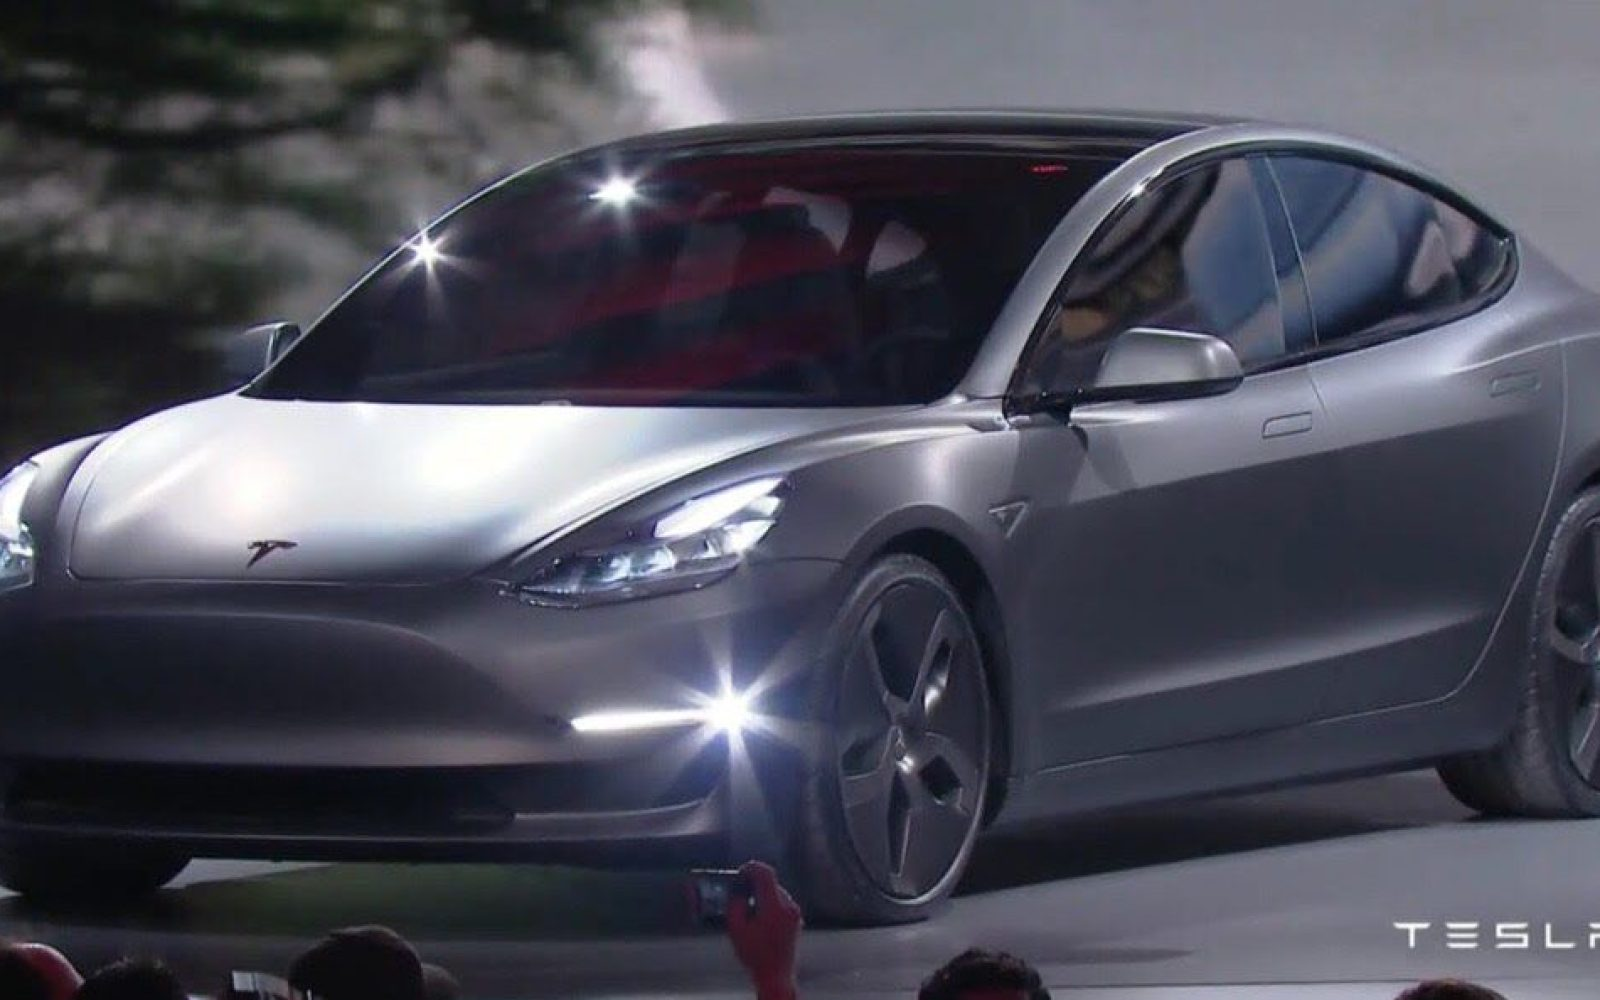 Tesla Model 3 pricing and options have not leaked, here's what happened